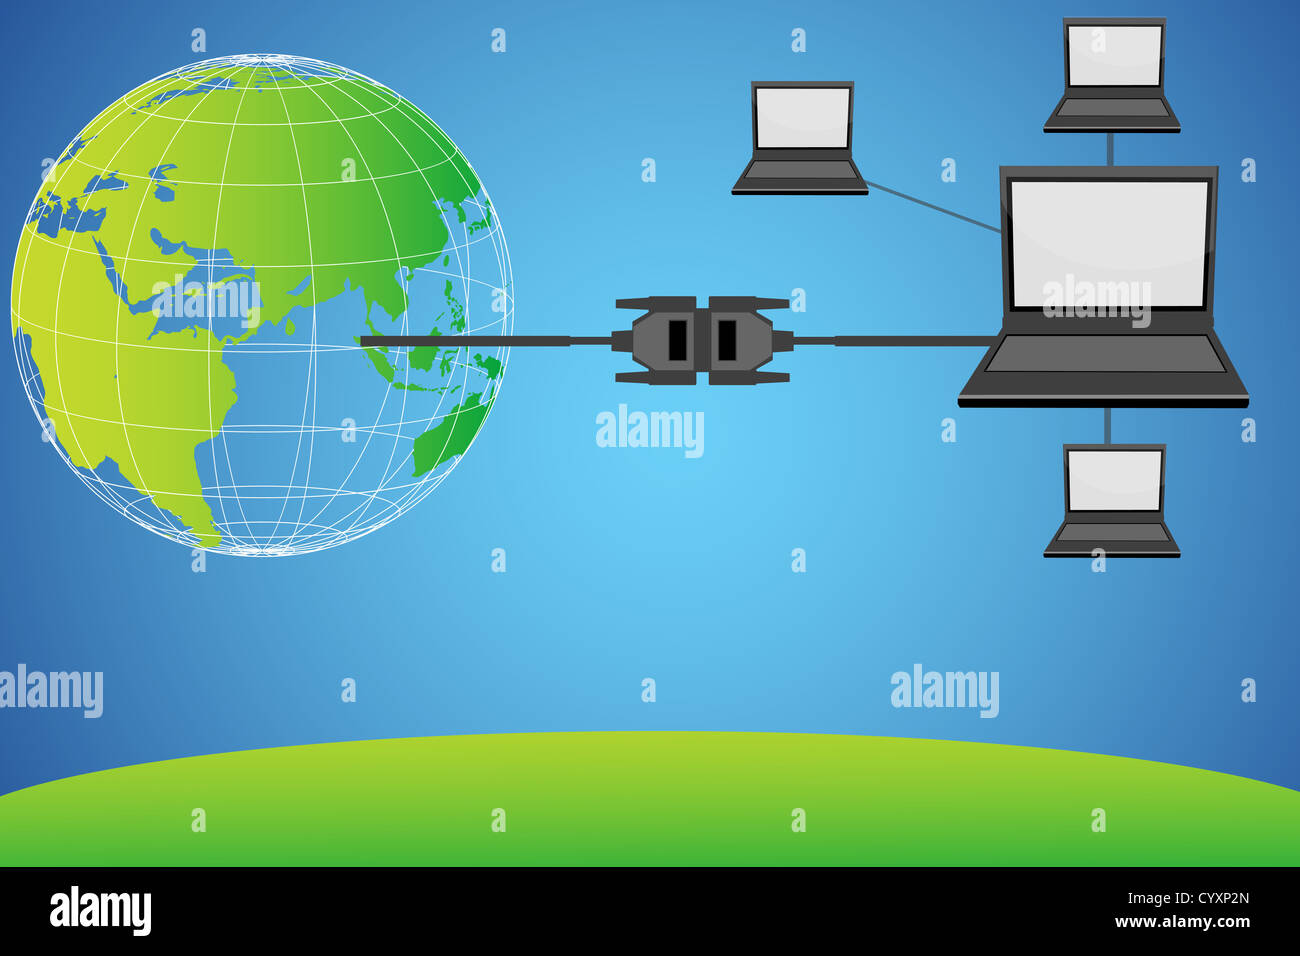 hight resolution of illustration of laptops connected with globe through wire